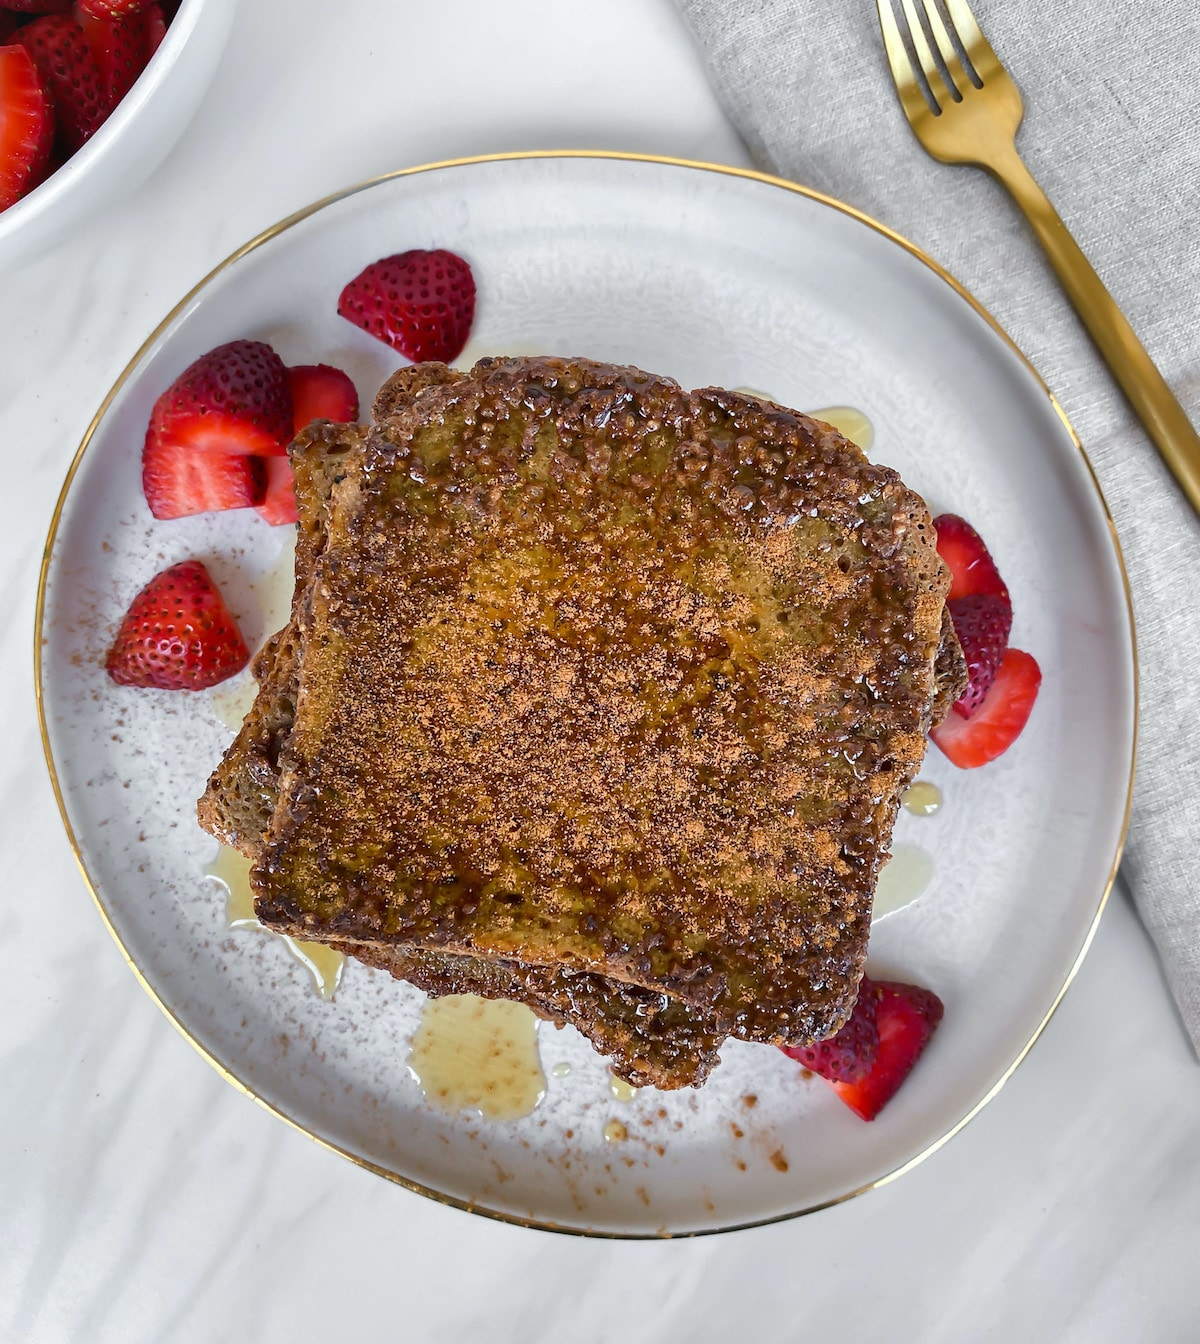 Healthy vegan gluten free golden brown french toast with bright red strawberries